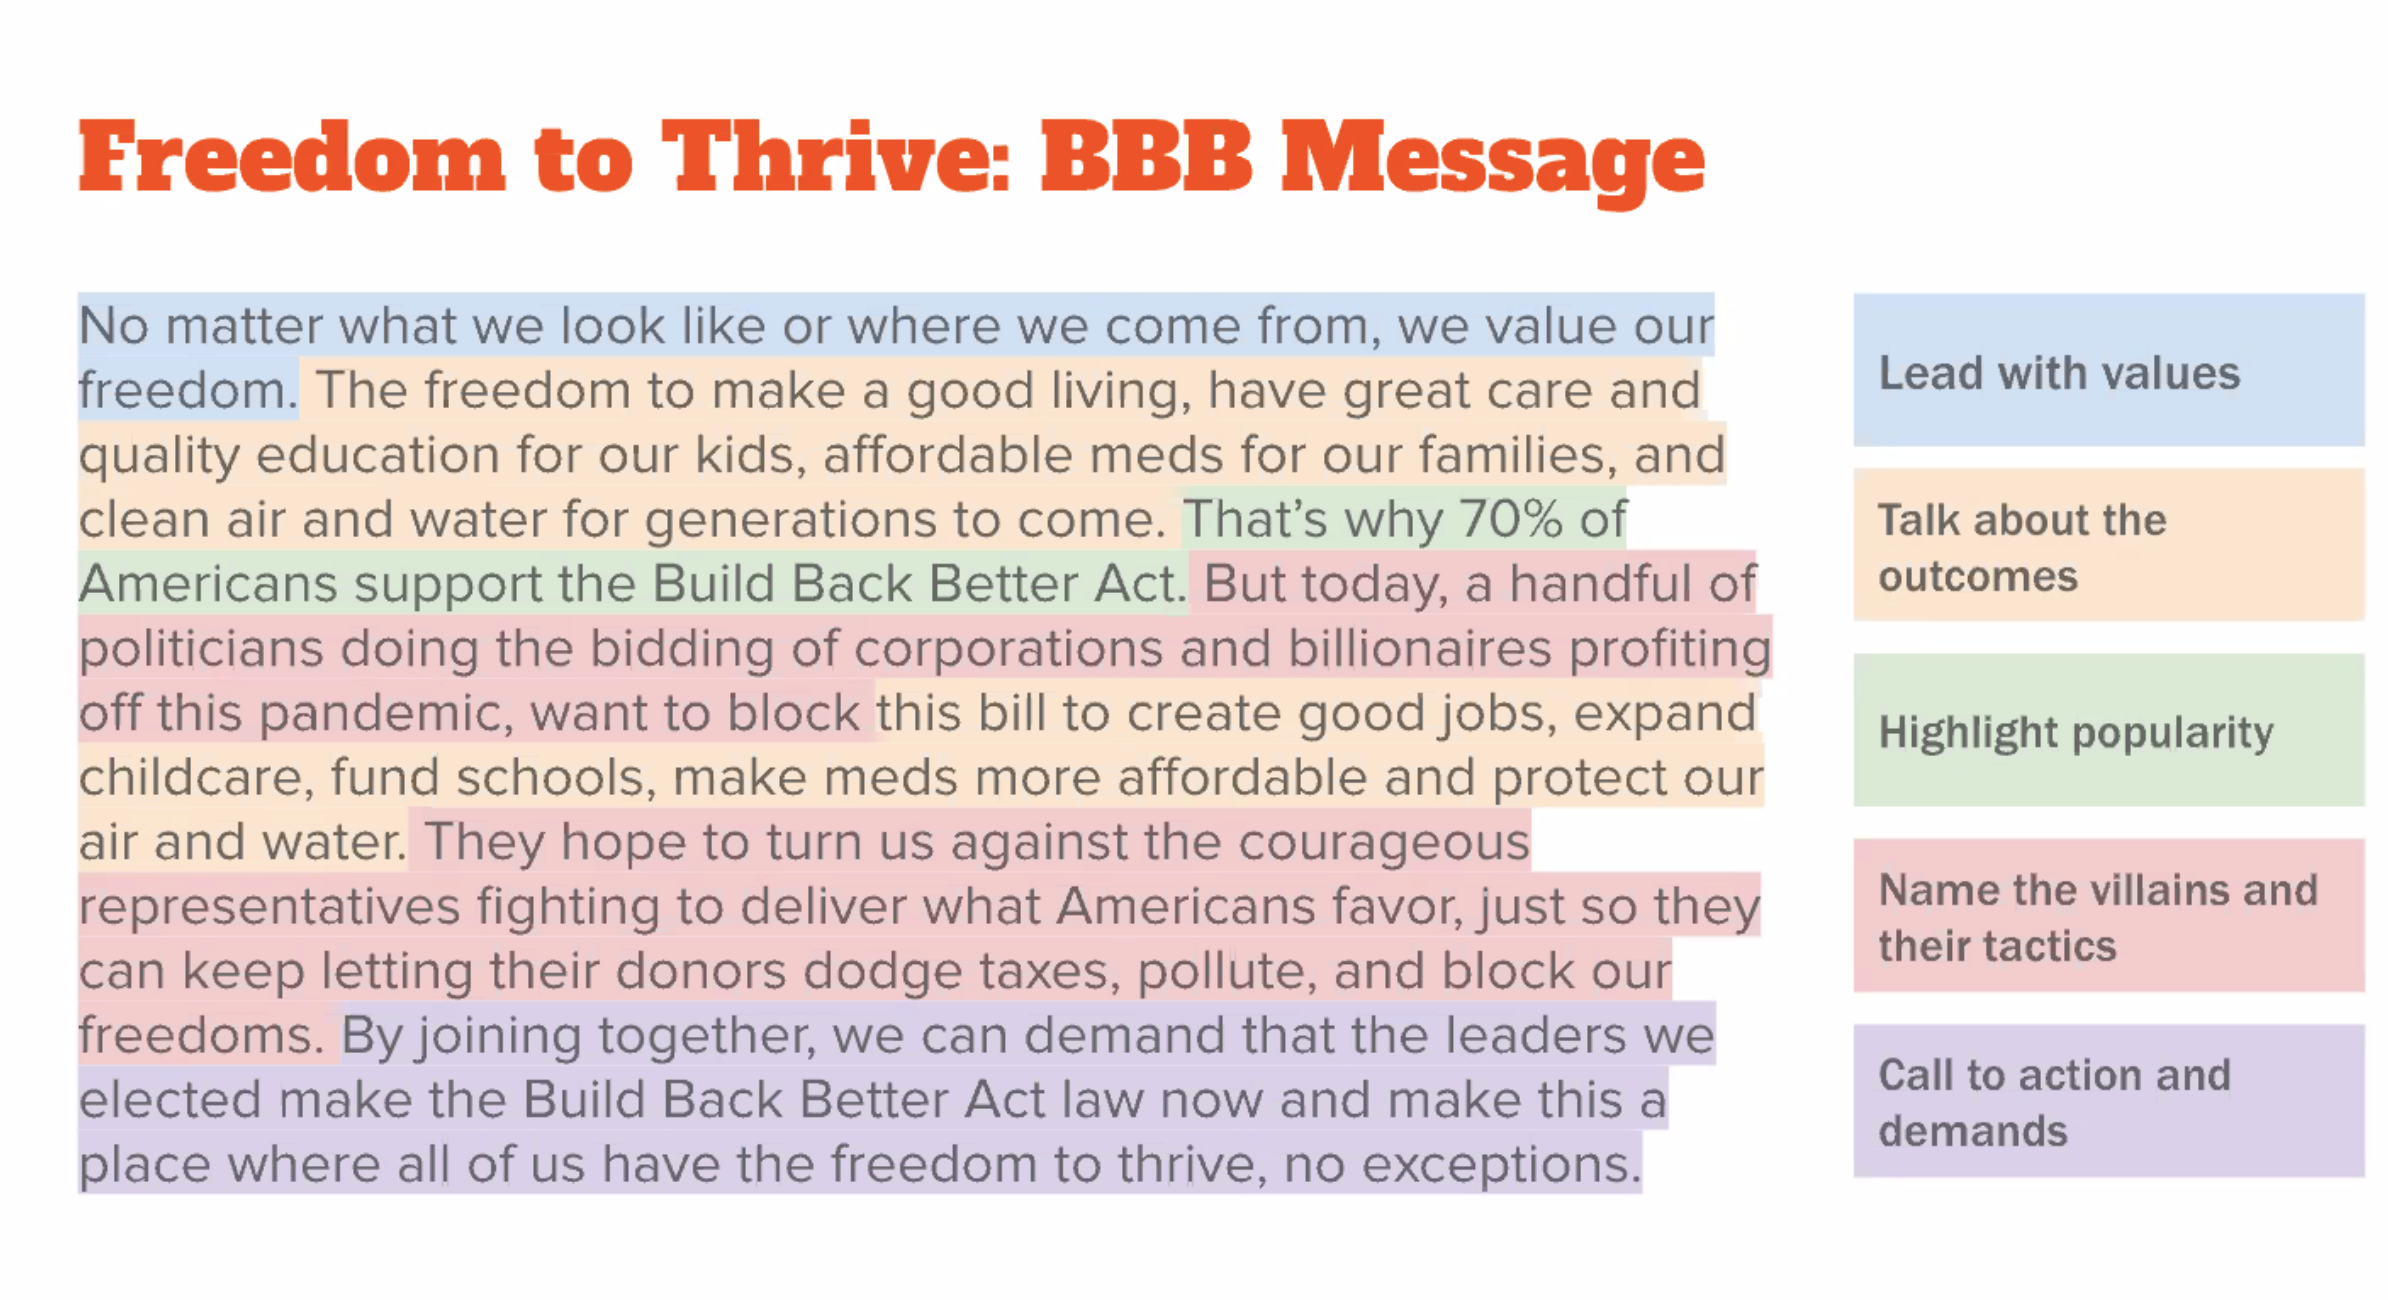 Freedom to Thrive is an example of how ASO Communications recommends framing messages.